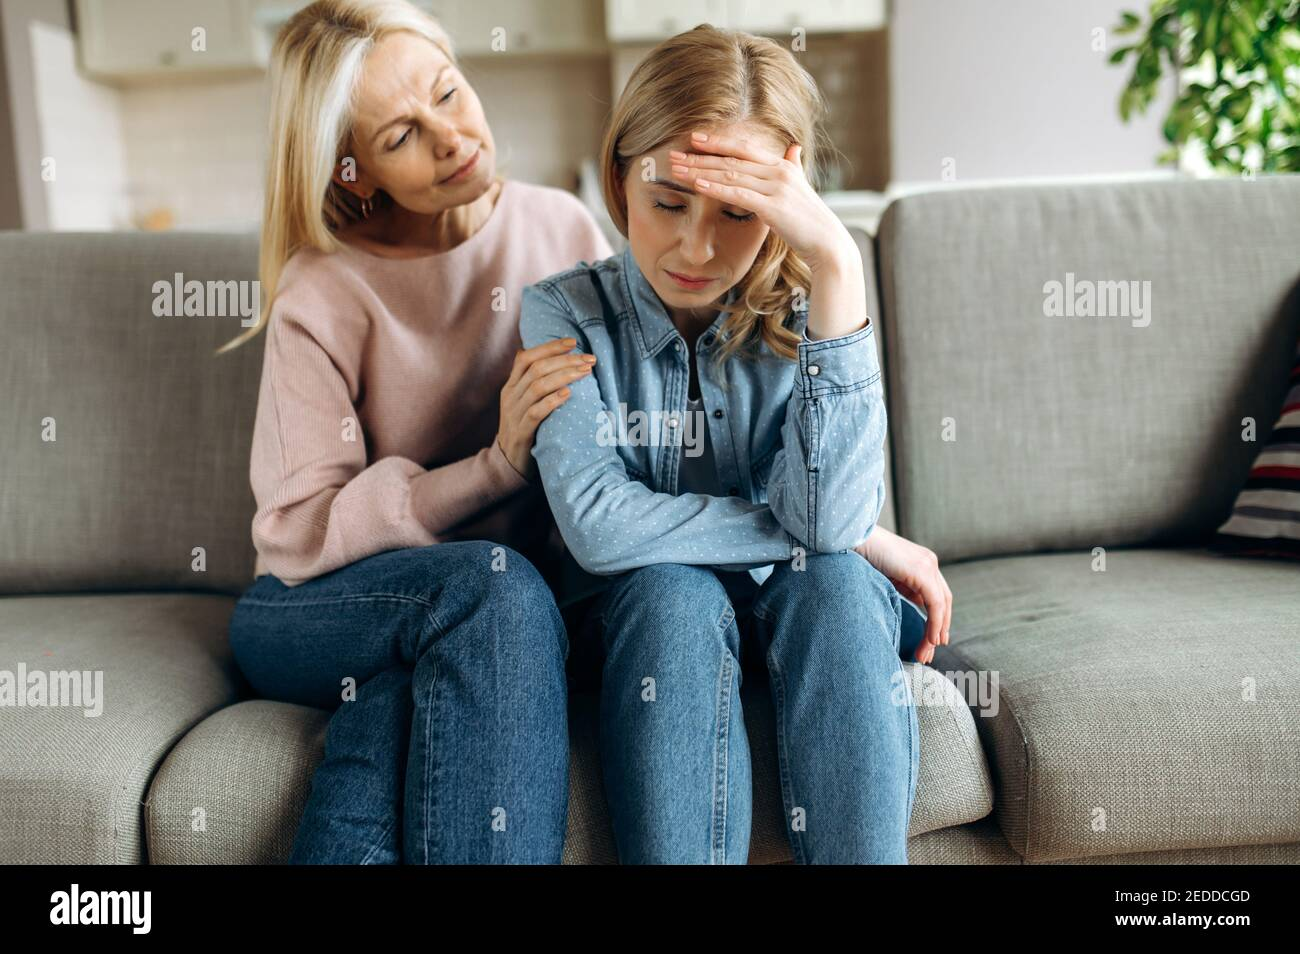 Worried mature mother consoles her adult daughter, helping with problem and depression, caring she, empathy, support in two age generations. Support of a loved one Stock Photo